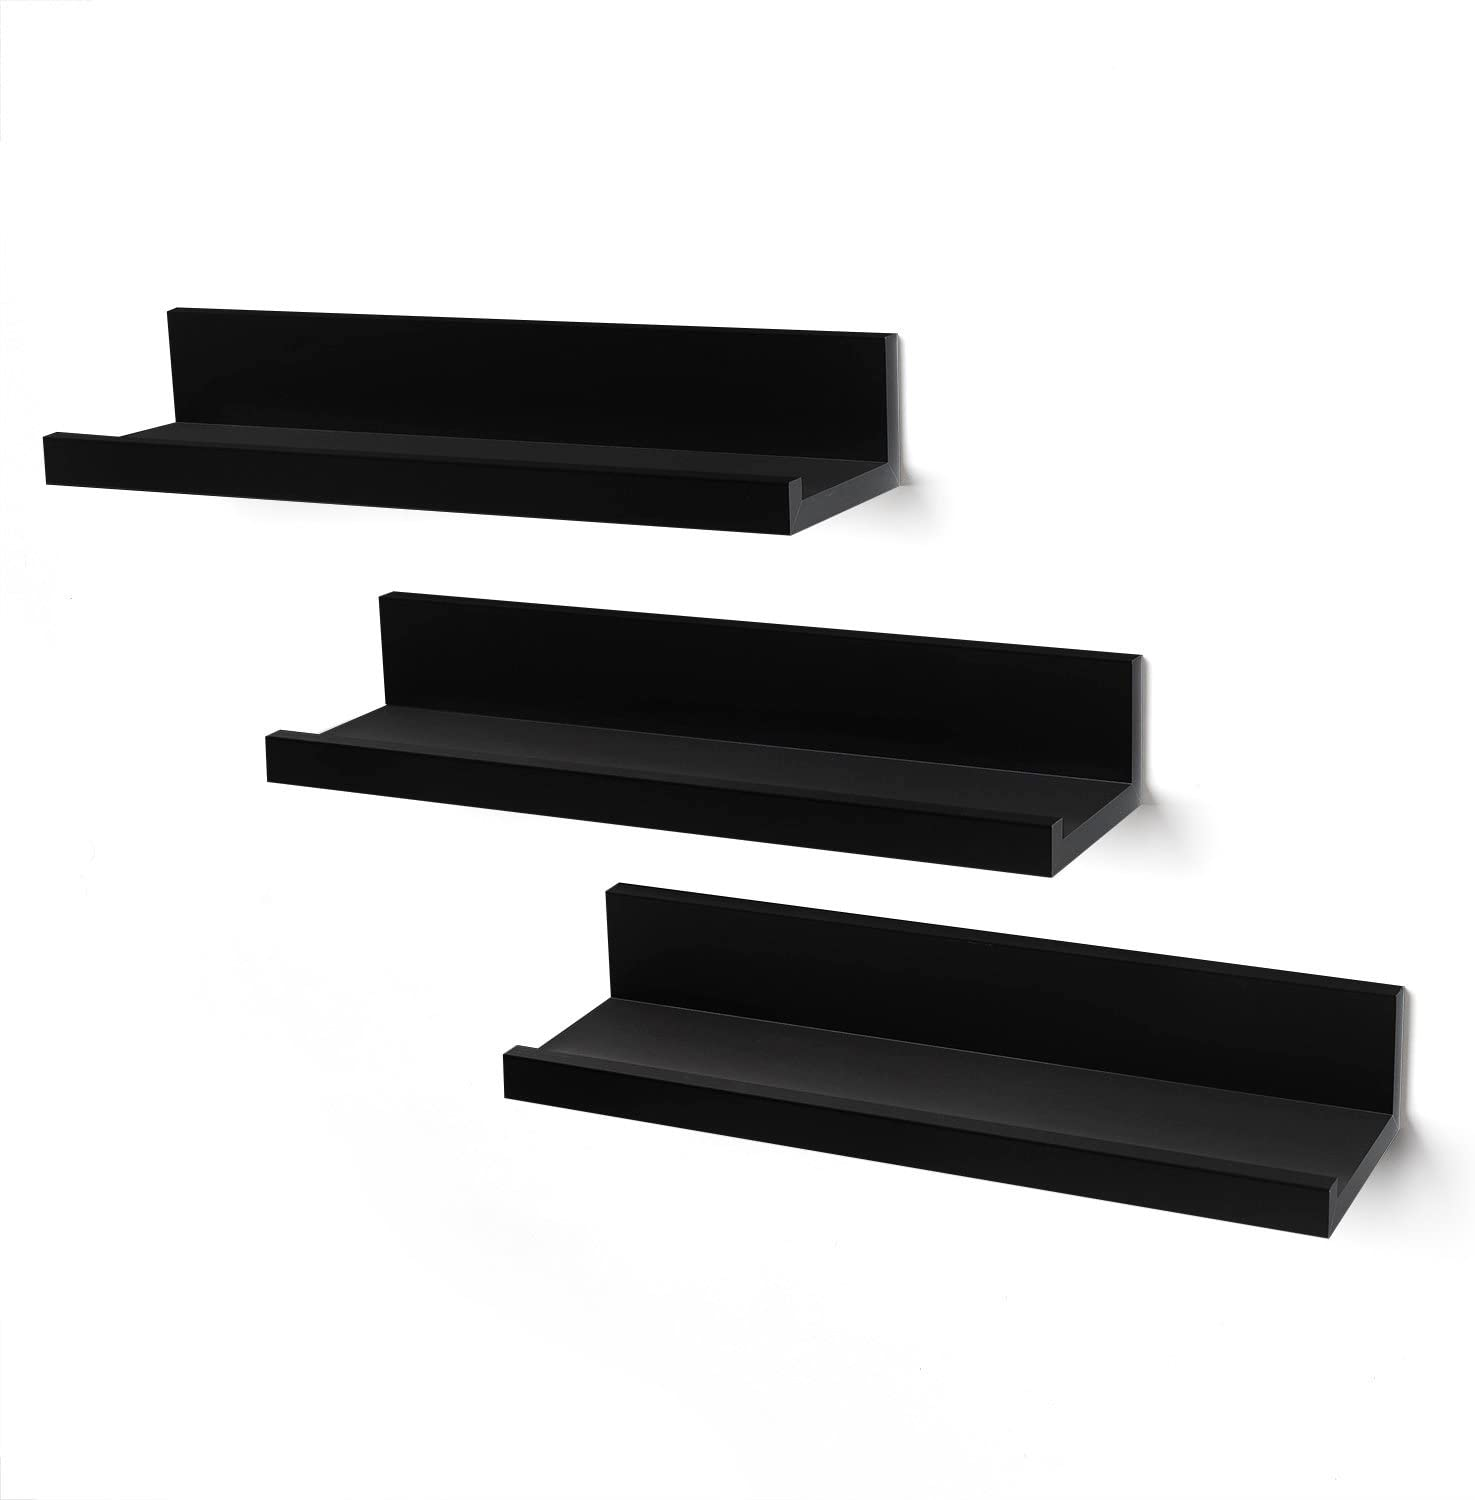 Americanflat Set of 3-14 Inch Floating Wall Shelves Black